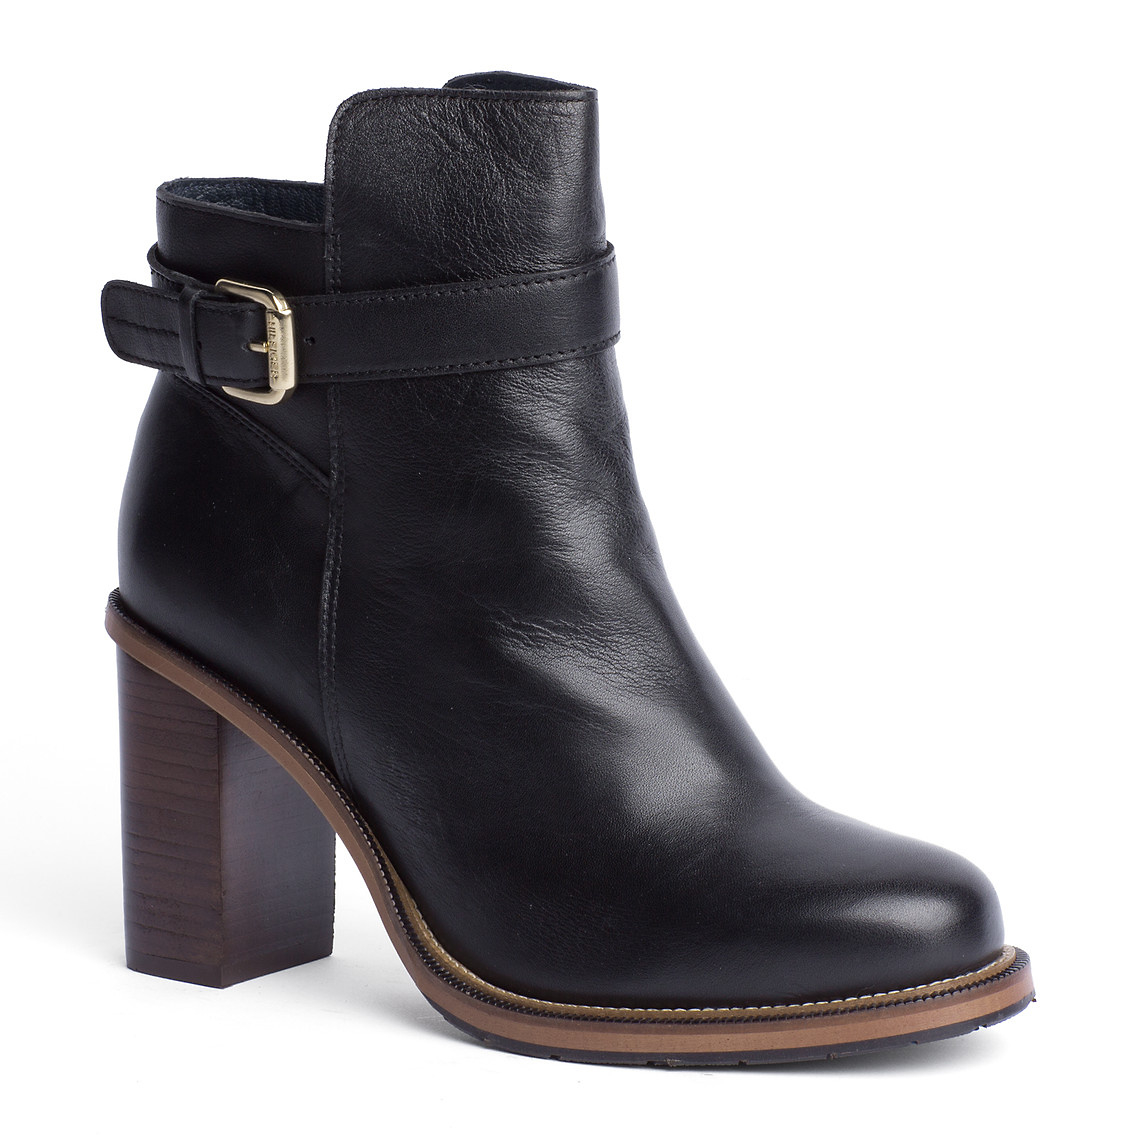 tommy hilfiger hillary ankle boots in black lyst. Black Bedroom Furniture Sets. Home Design Ideas